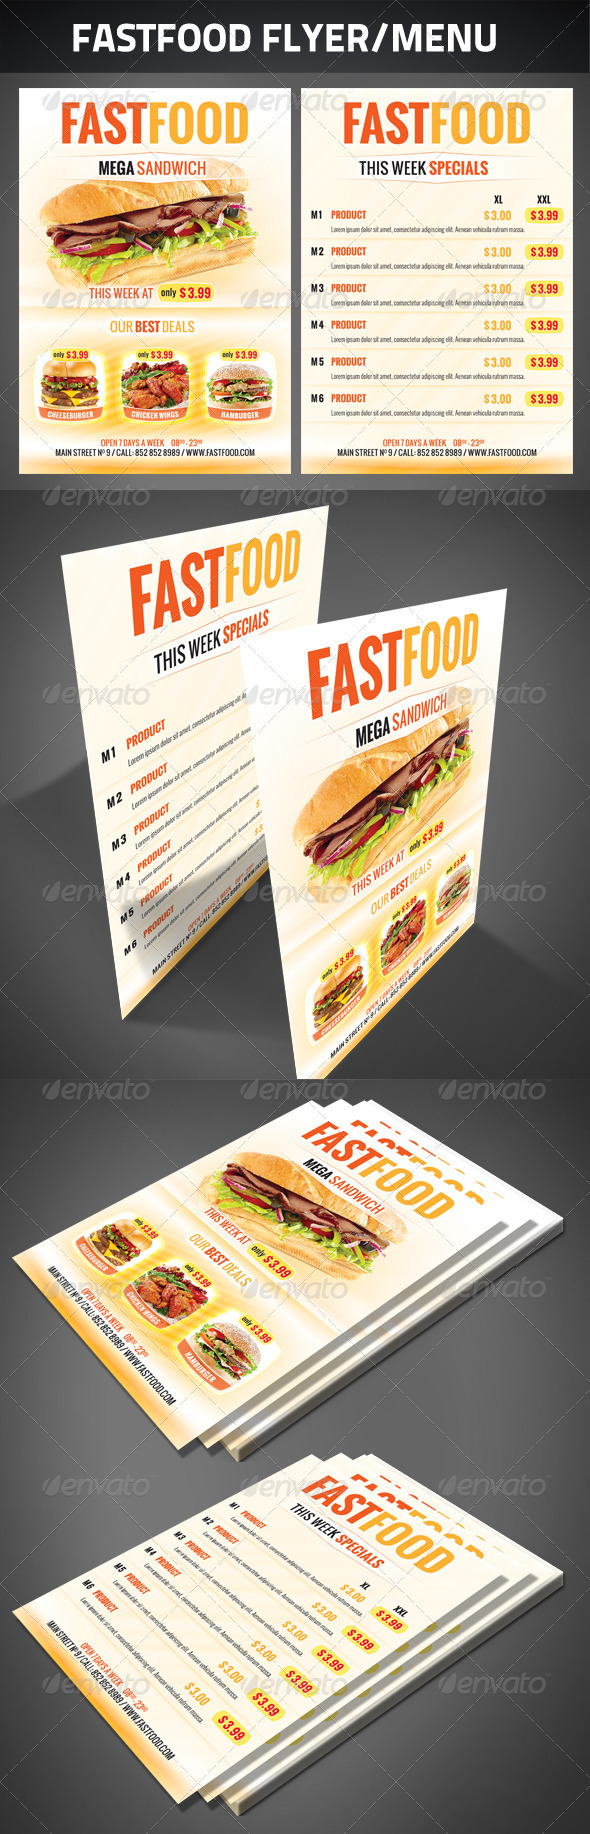 FastFood Flyer - Restaurant Flyers